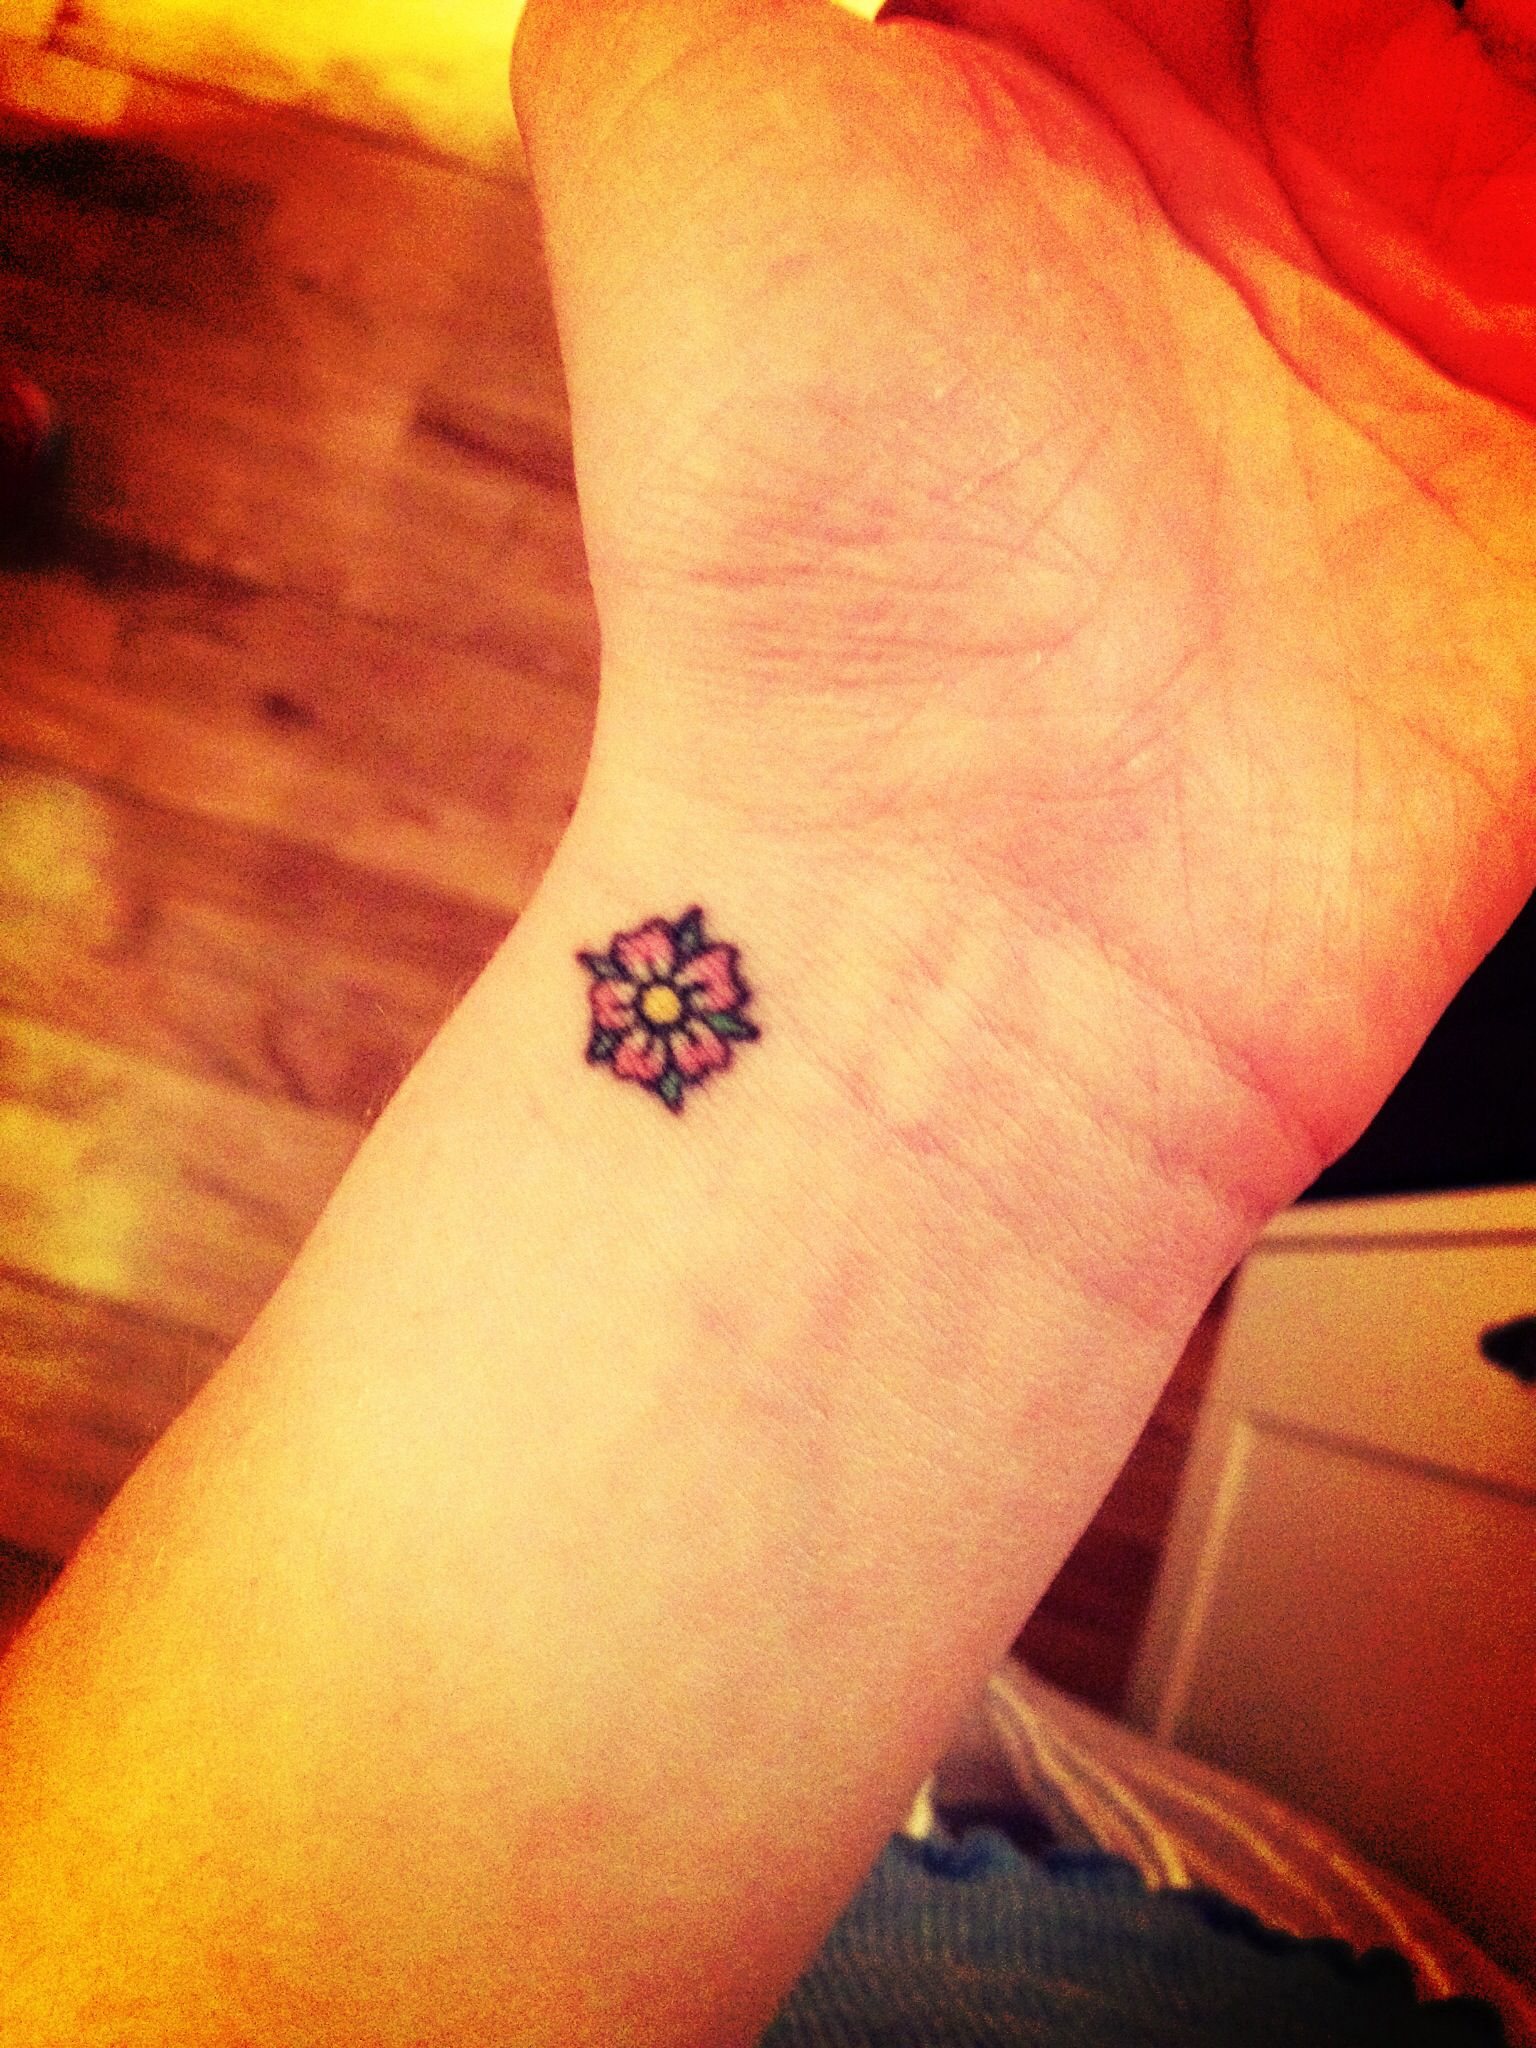 Ideas about flower ankle tattoos on pinterest little lotus flower - Tattoo Ideas Flower